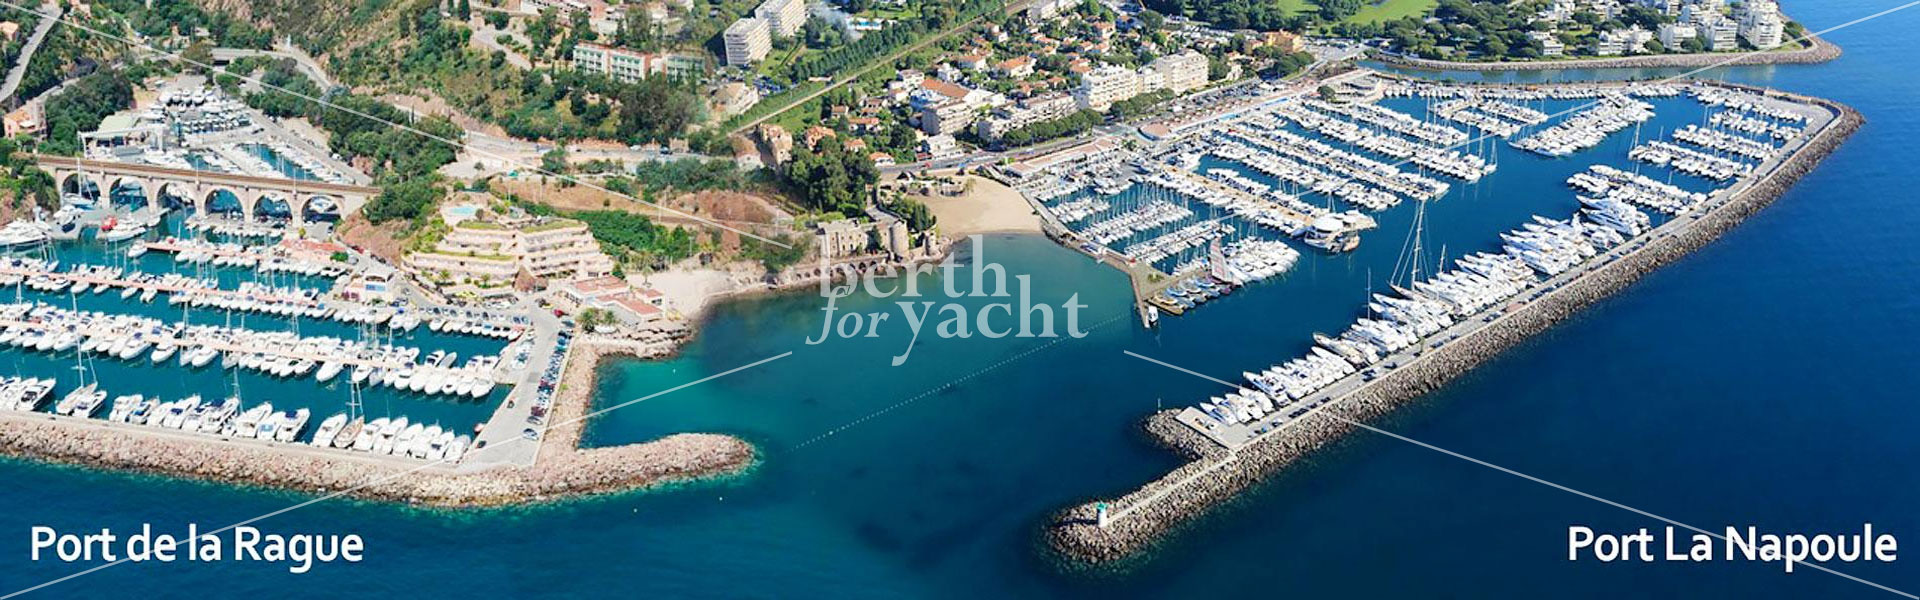 Berths for sale in Mandelieu | Berth For Yacht